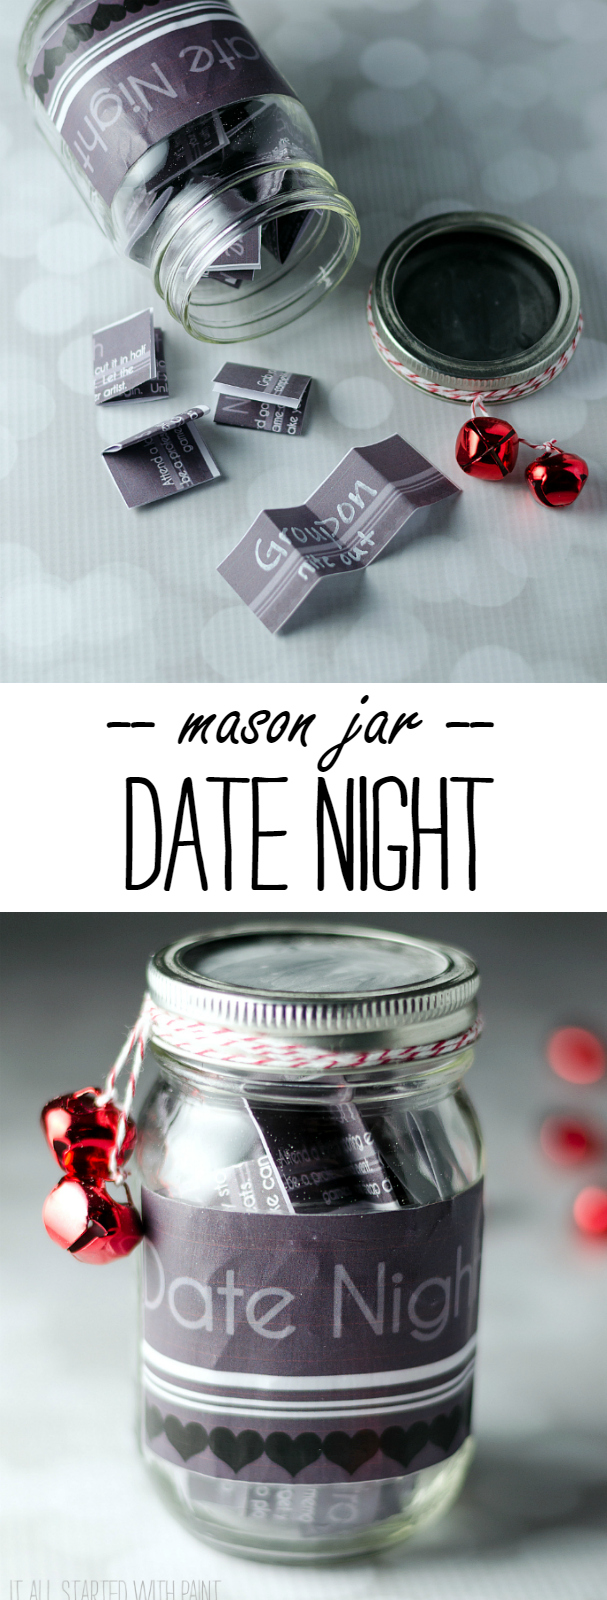 Date Night in Jar - Mason Jar Craft Ideas